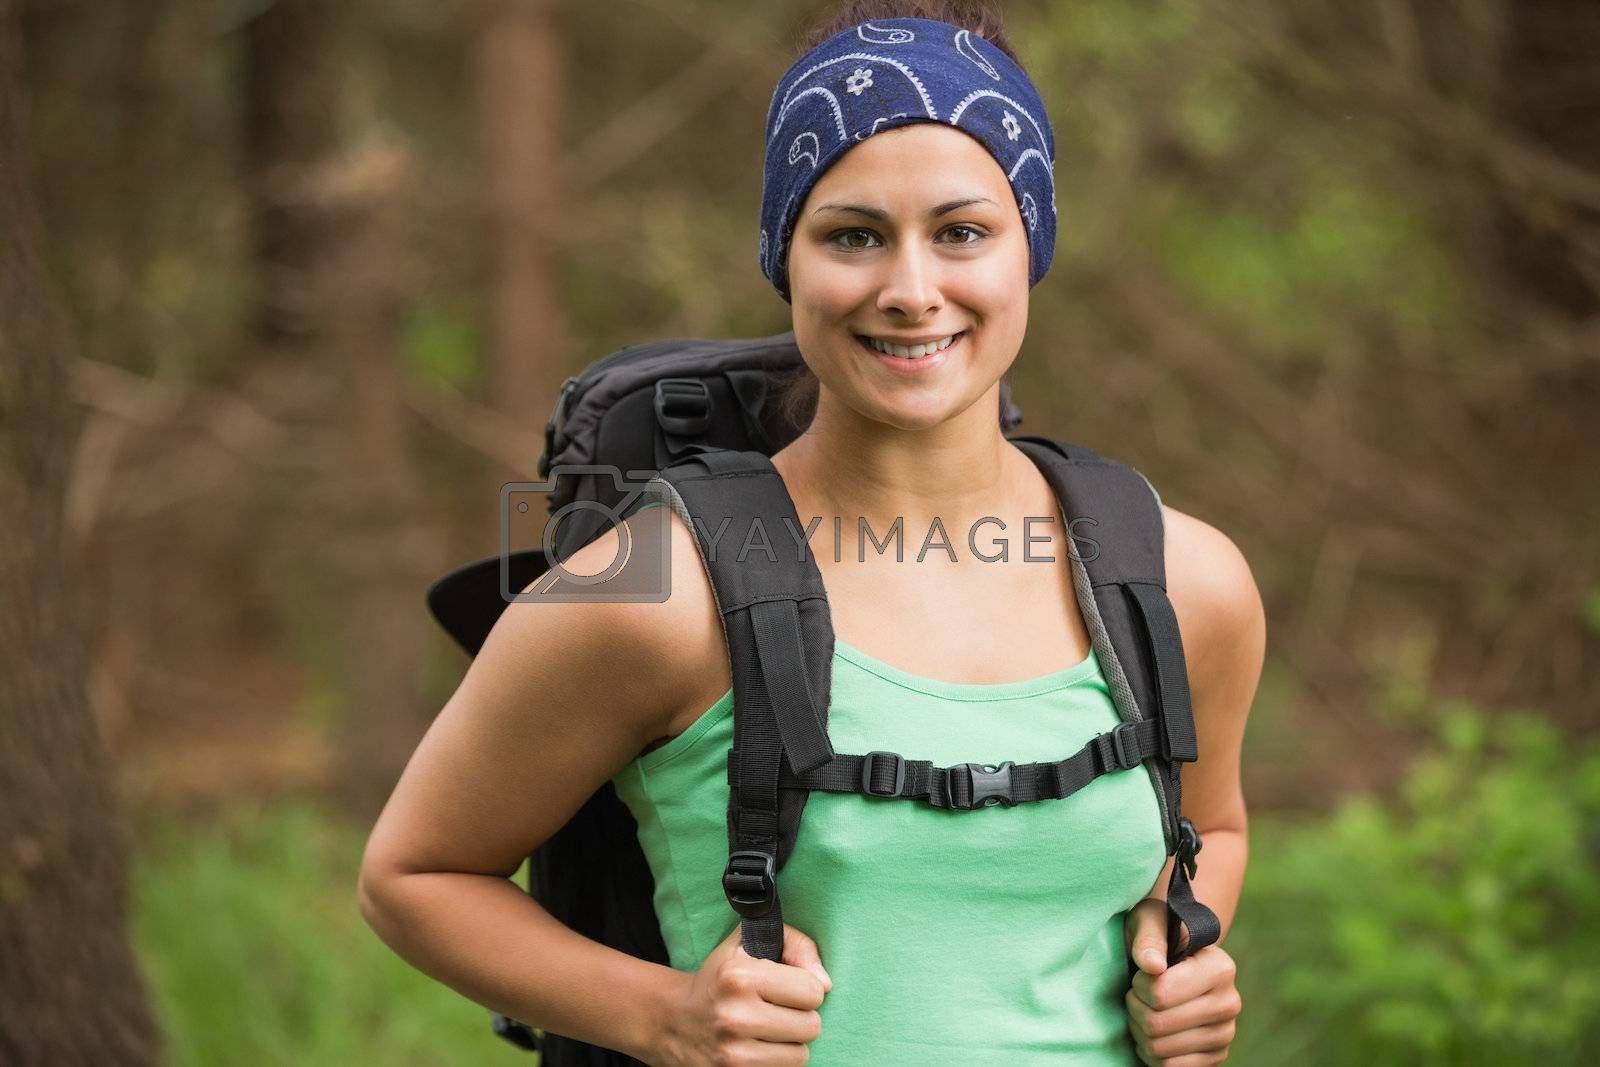 Smiling woman standing in a forest by Wavebreakmedia